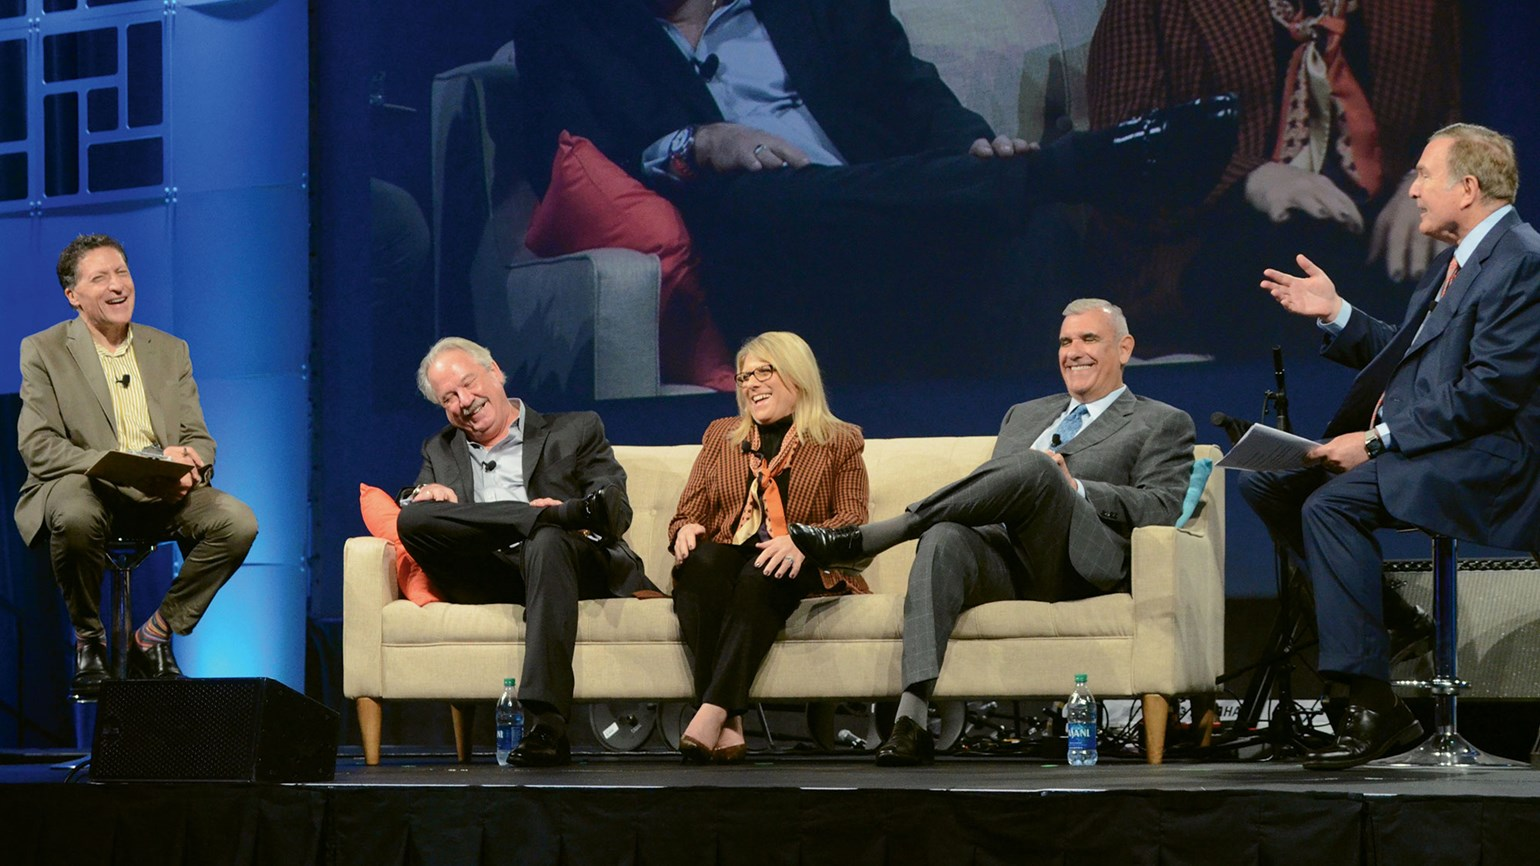 RCCL presidents tackle overtourism, luxury, female leadership